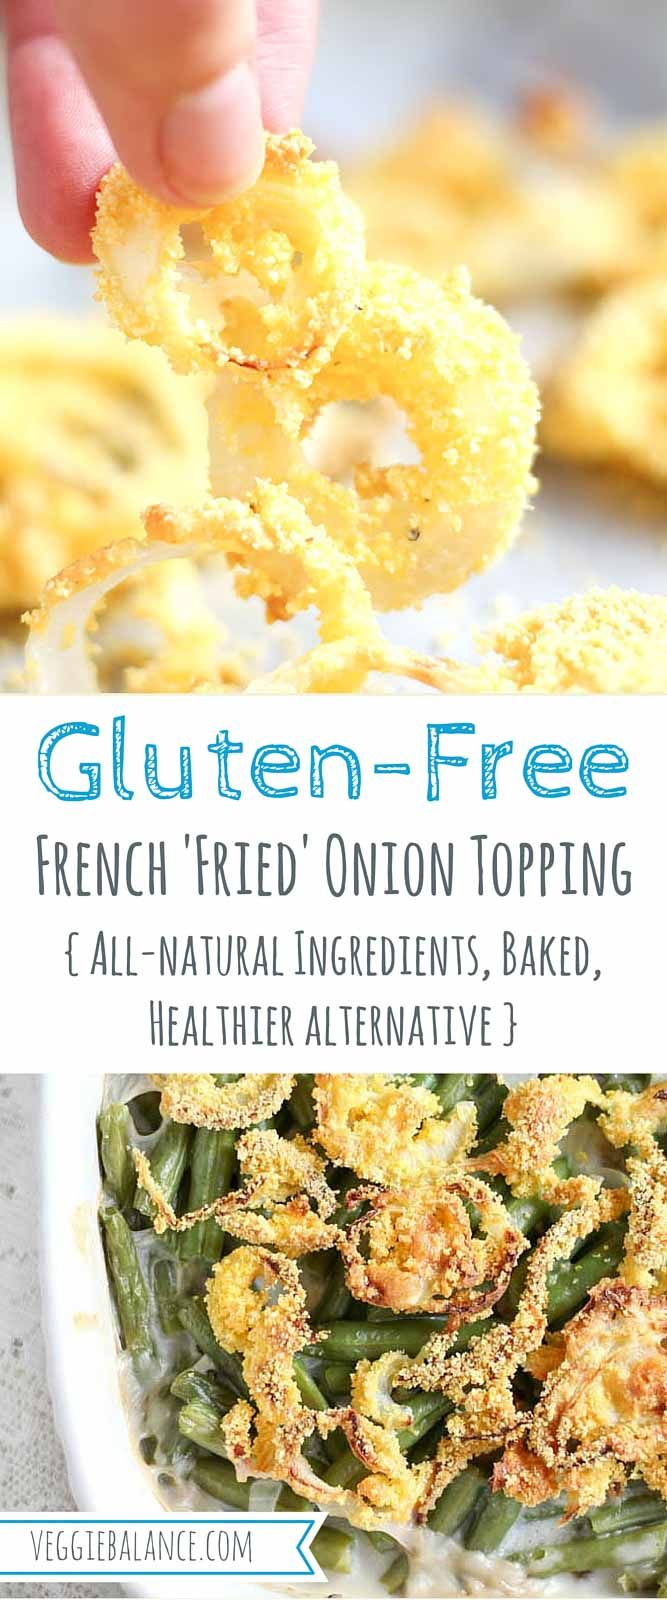 Gluten-Free French Fried Onion Toppings   Plant-Based Easy Recipes by Veggie Balance